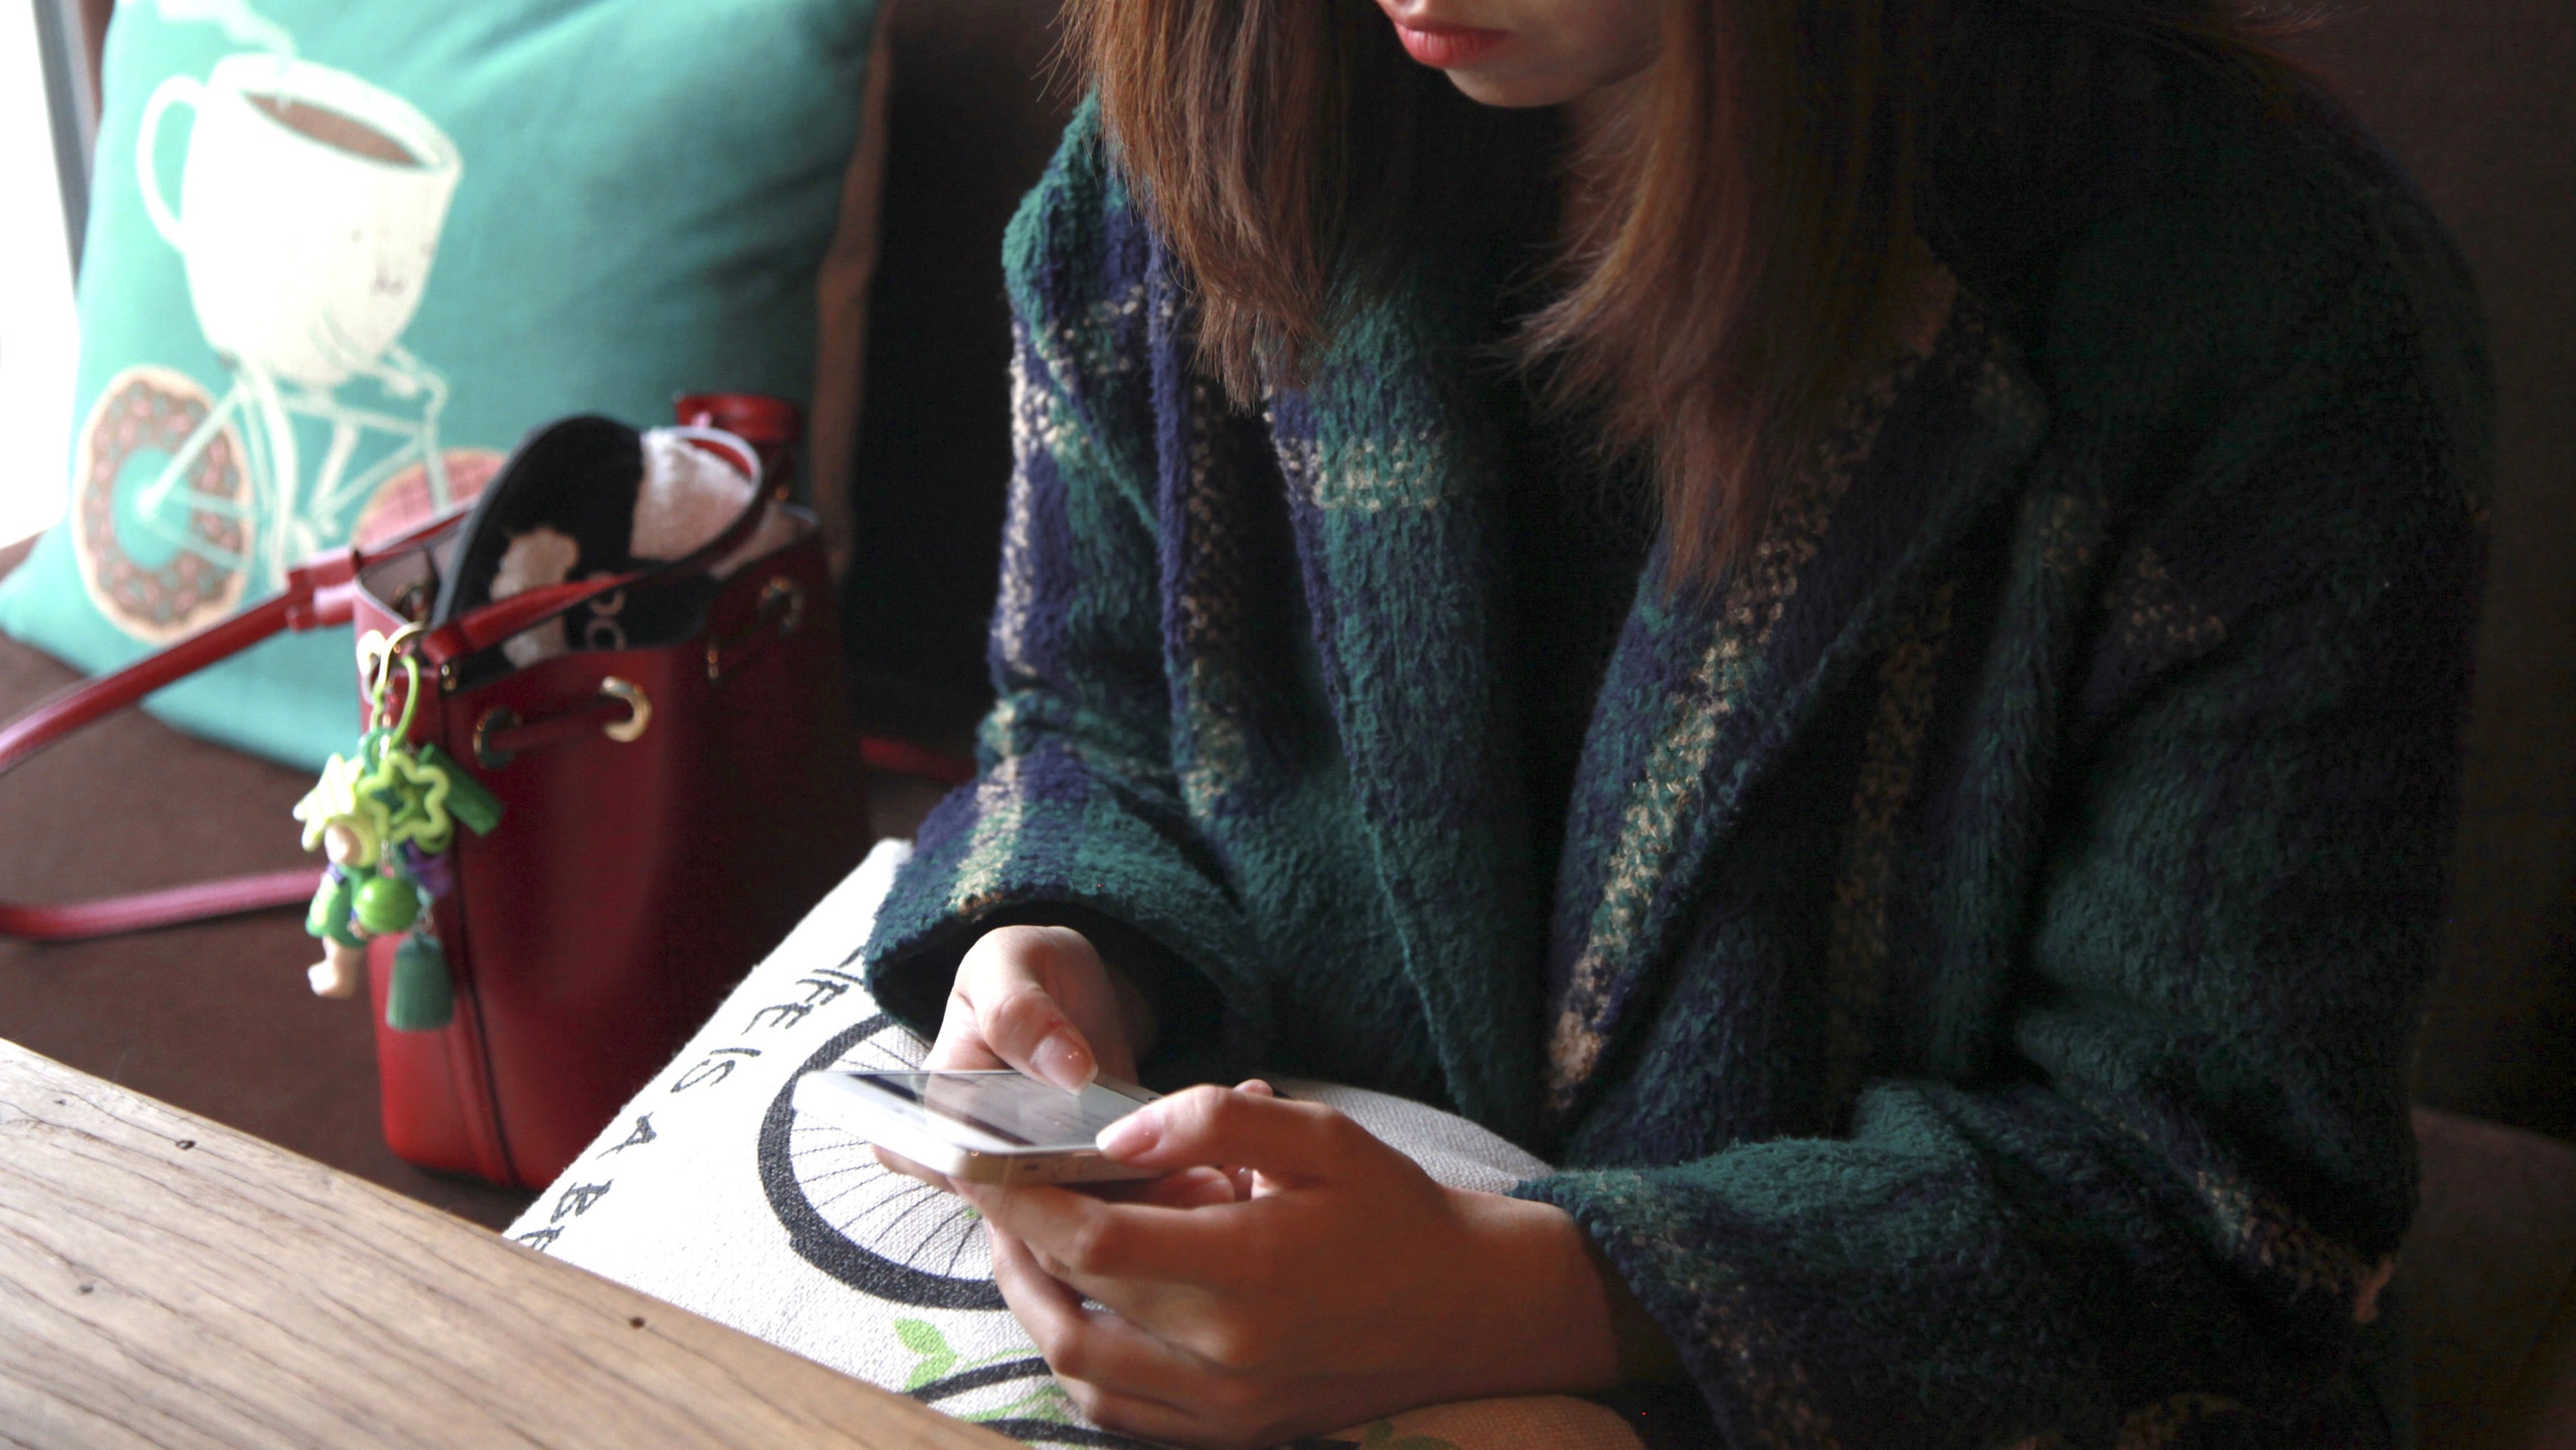 A woman uses an app on a mobile phone